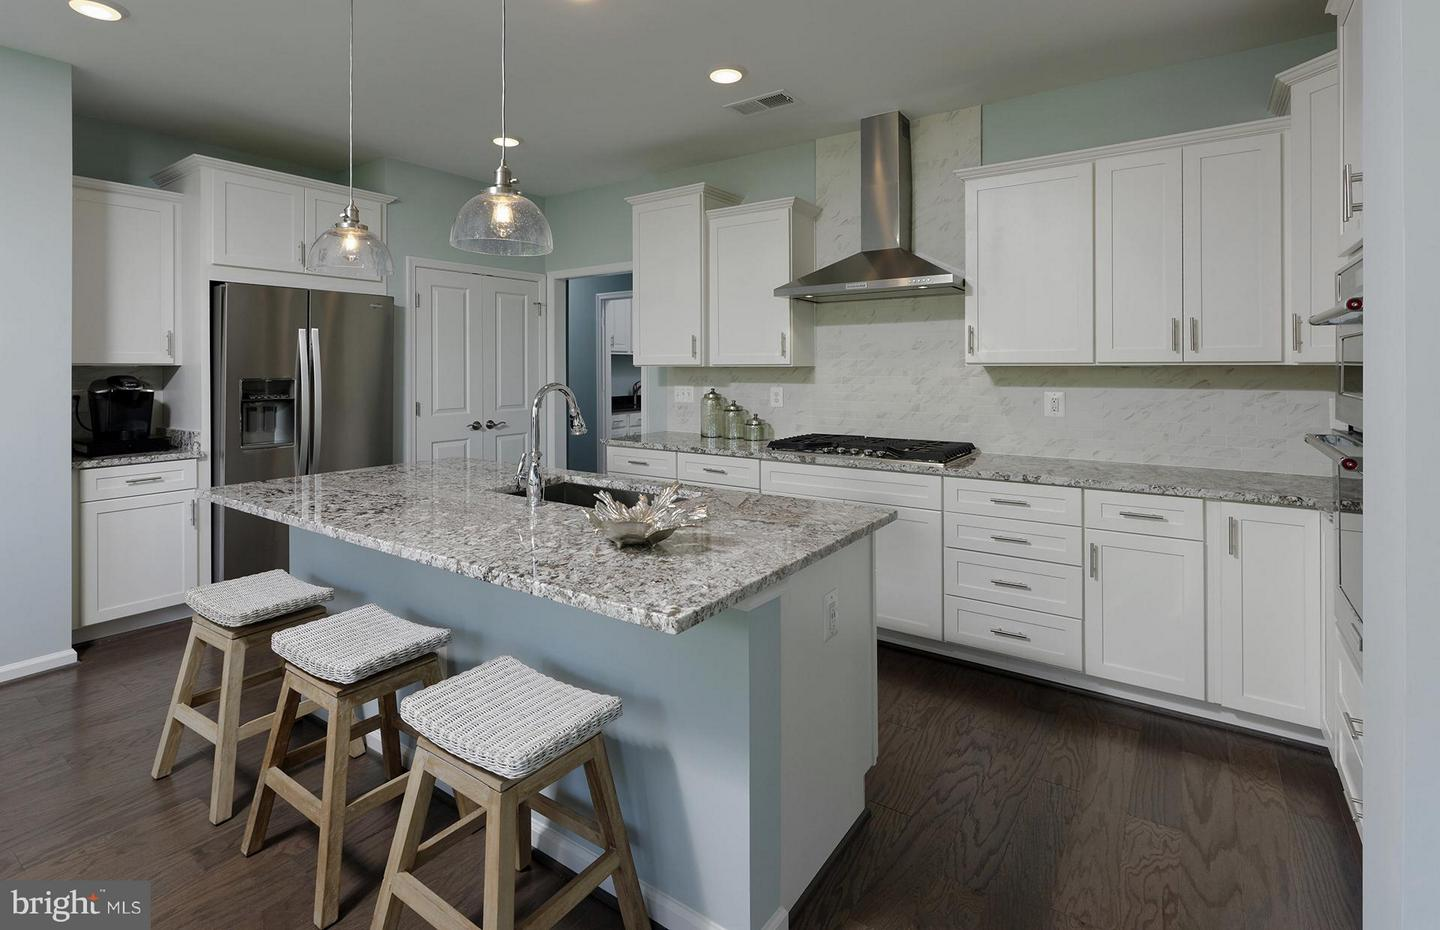 Additional photo for property listing at 44521 Fiery Skipper Ter #0 44521 Fiery Skipper Ter #0 Ashburn, Virginia 20147 United States